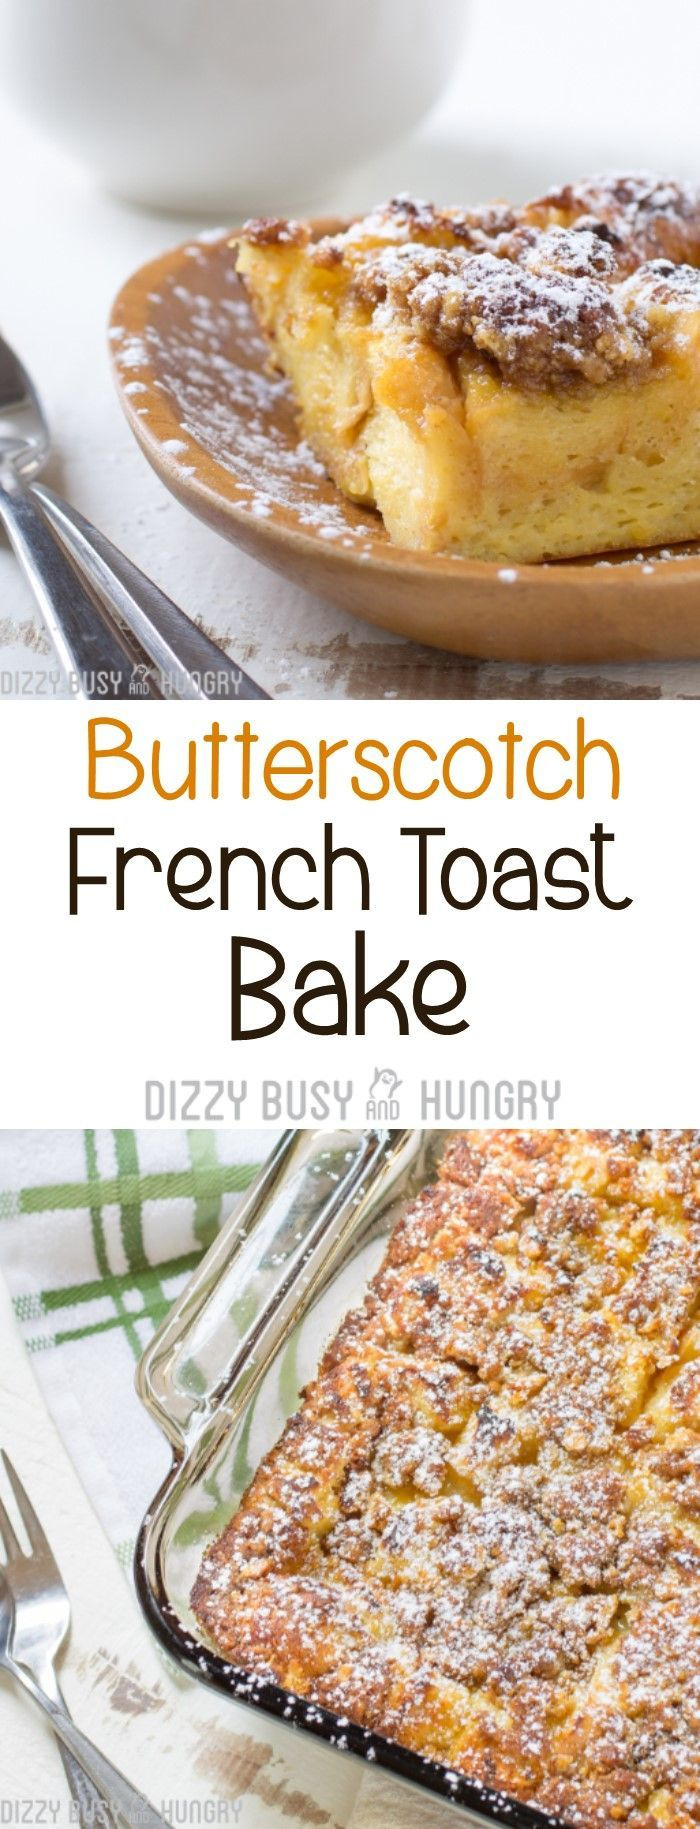 Butterscotch French Toast Bake http://www.dizzybusyandhungry.com/butterscotch-french-toast-bake/